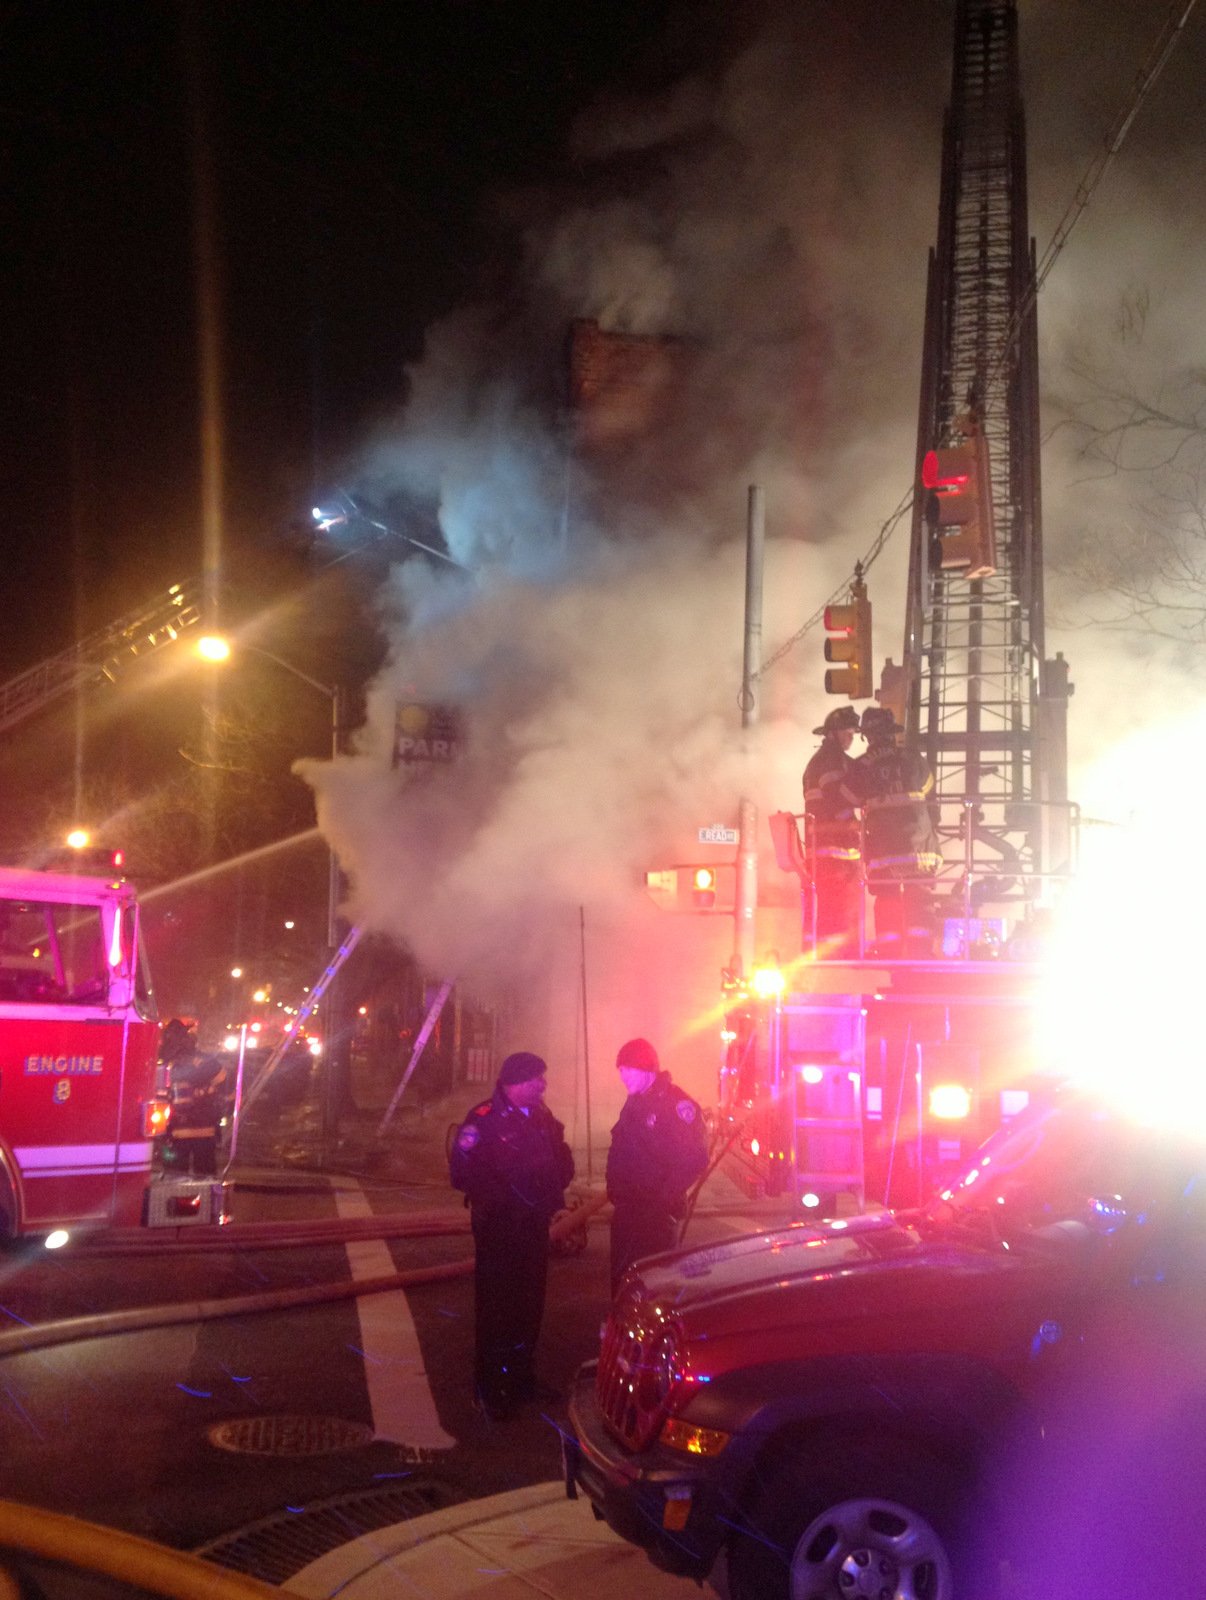 No injuries were reported following this early morning fire in Mt. Vernon. (Photo by John Bloch)